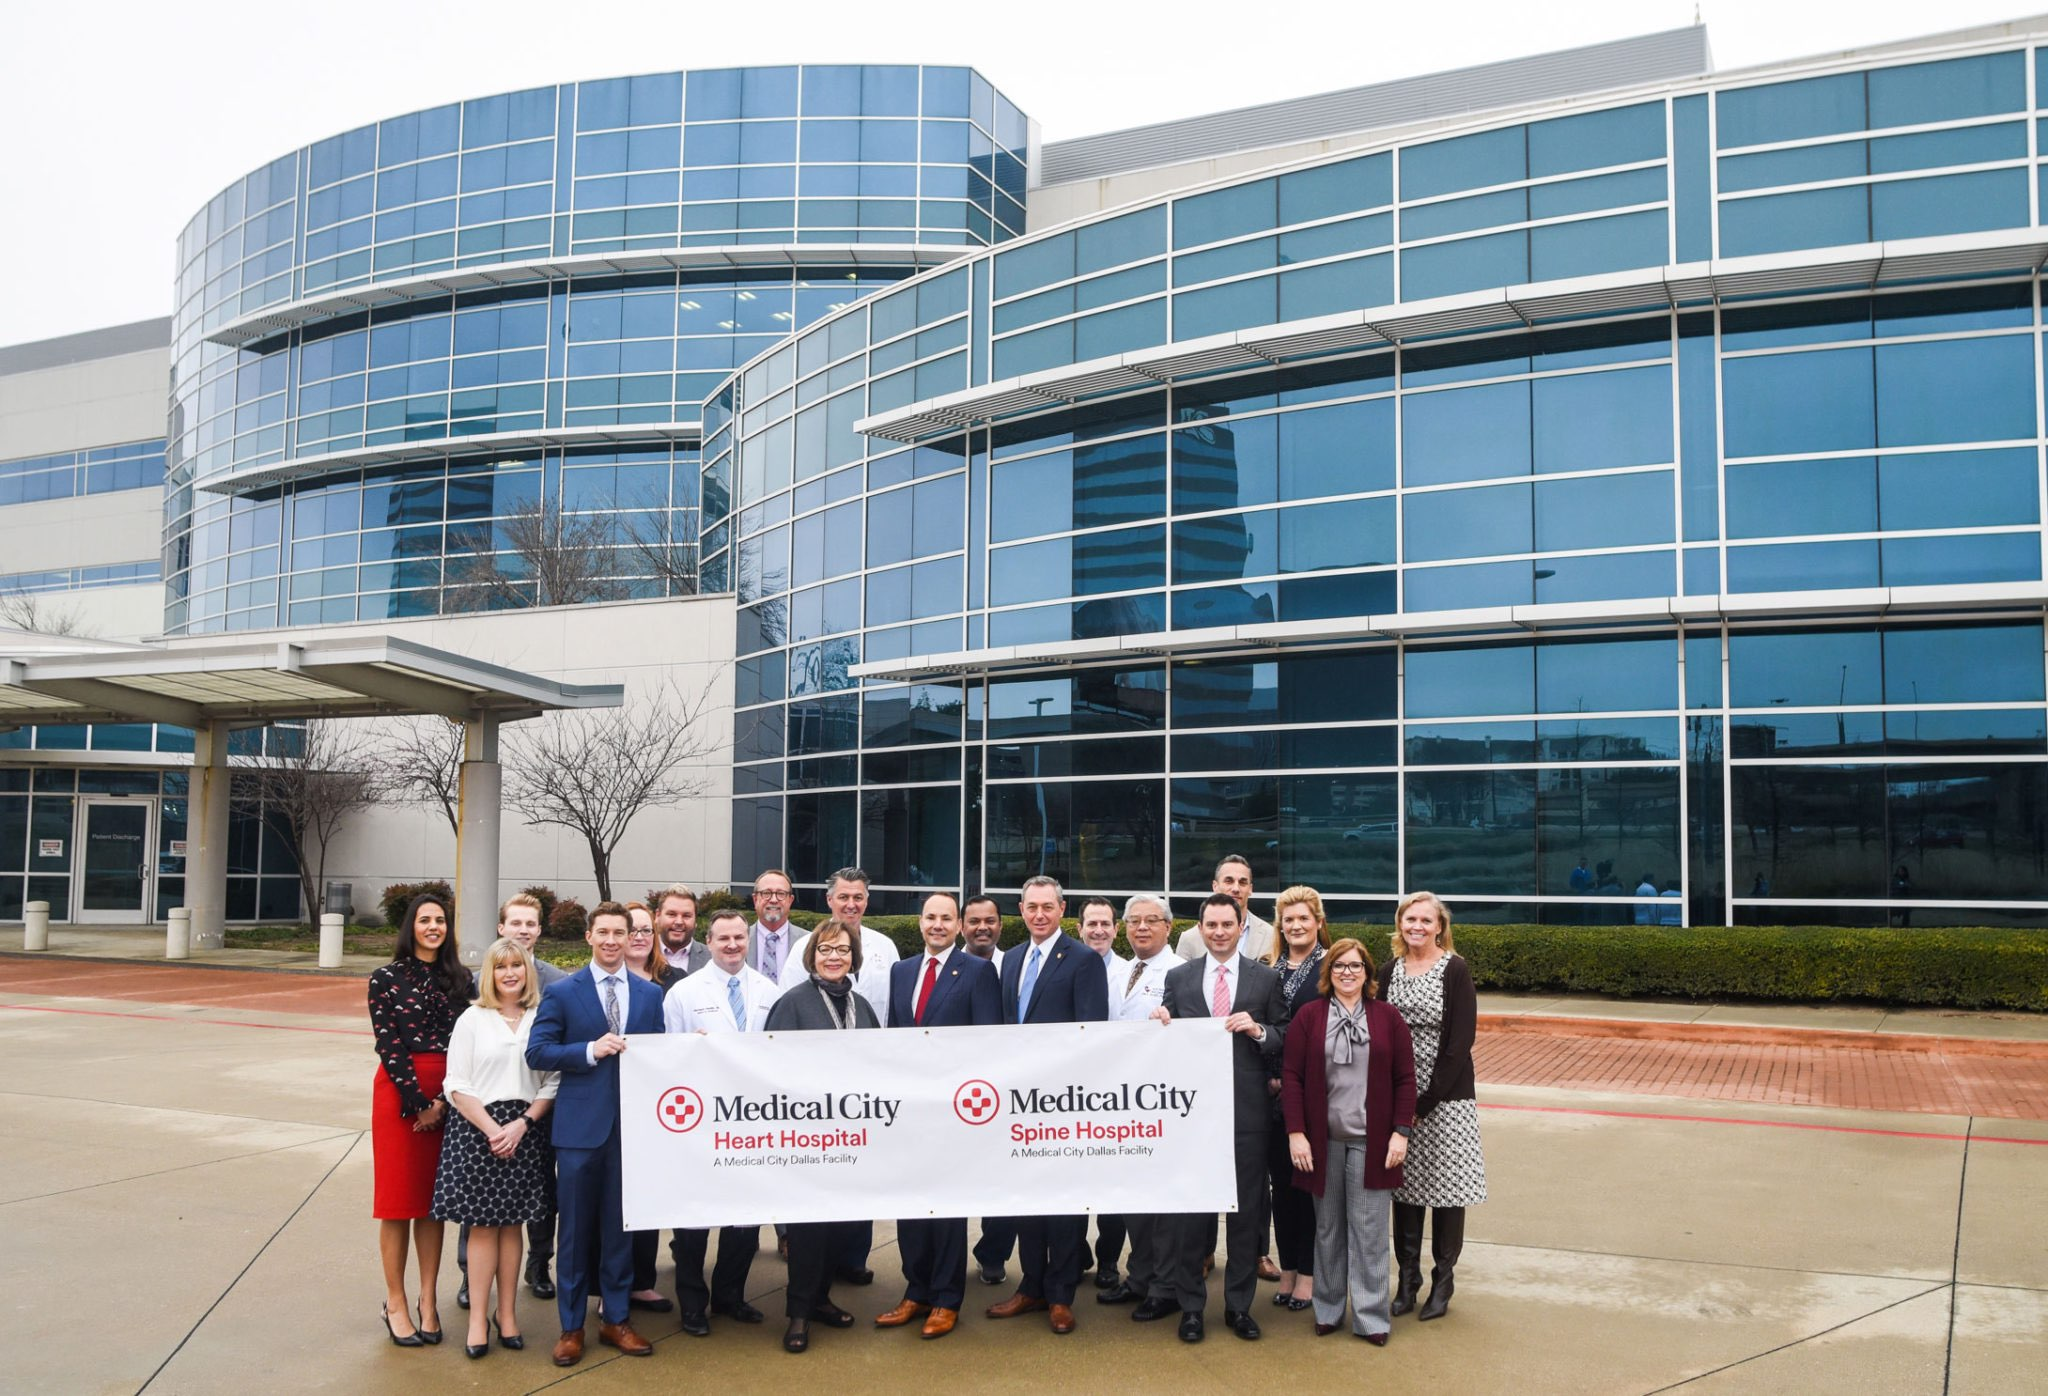 Medical City Dallas to Open New Heart and Spine Hospitals - Addison